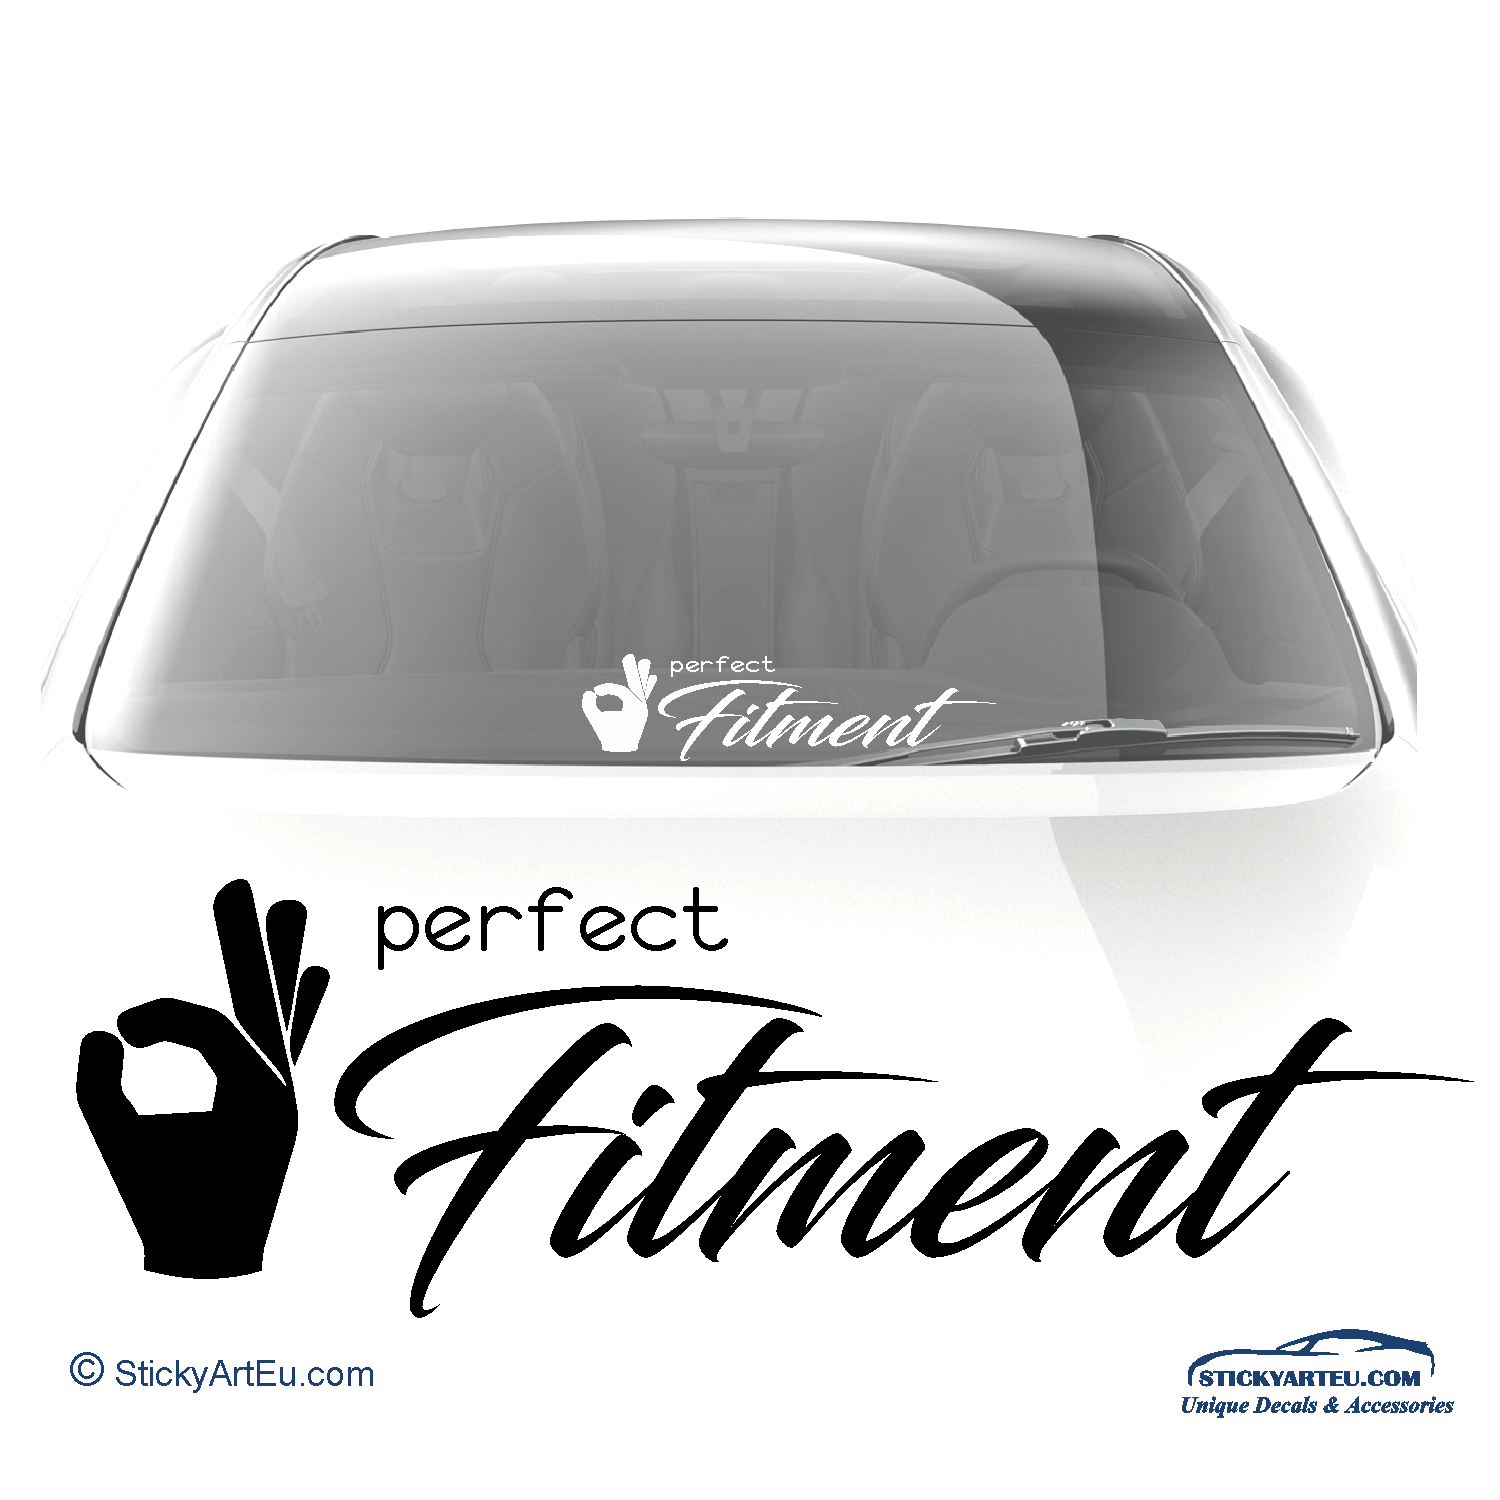 Perfect Fitment vinyl decal - stickyarteu